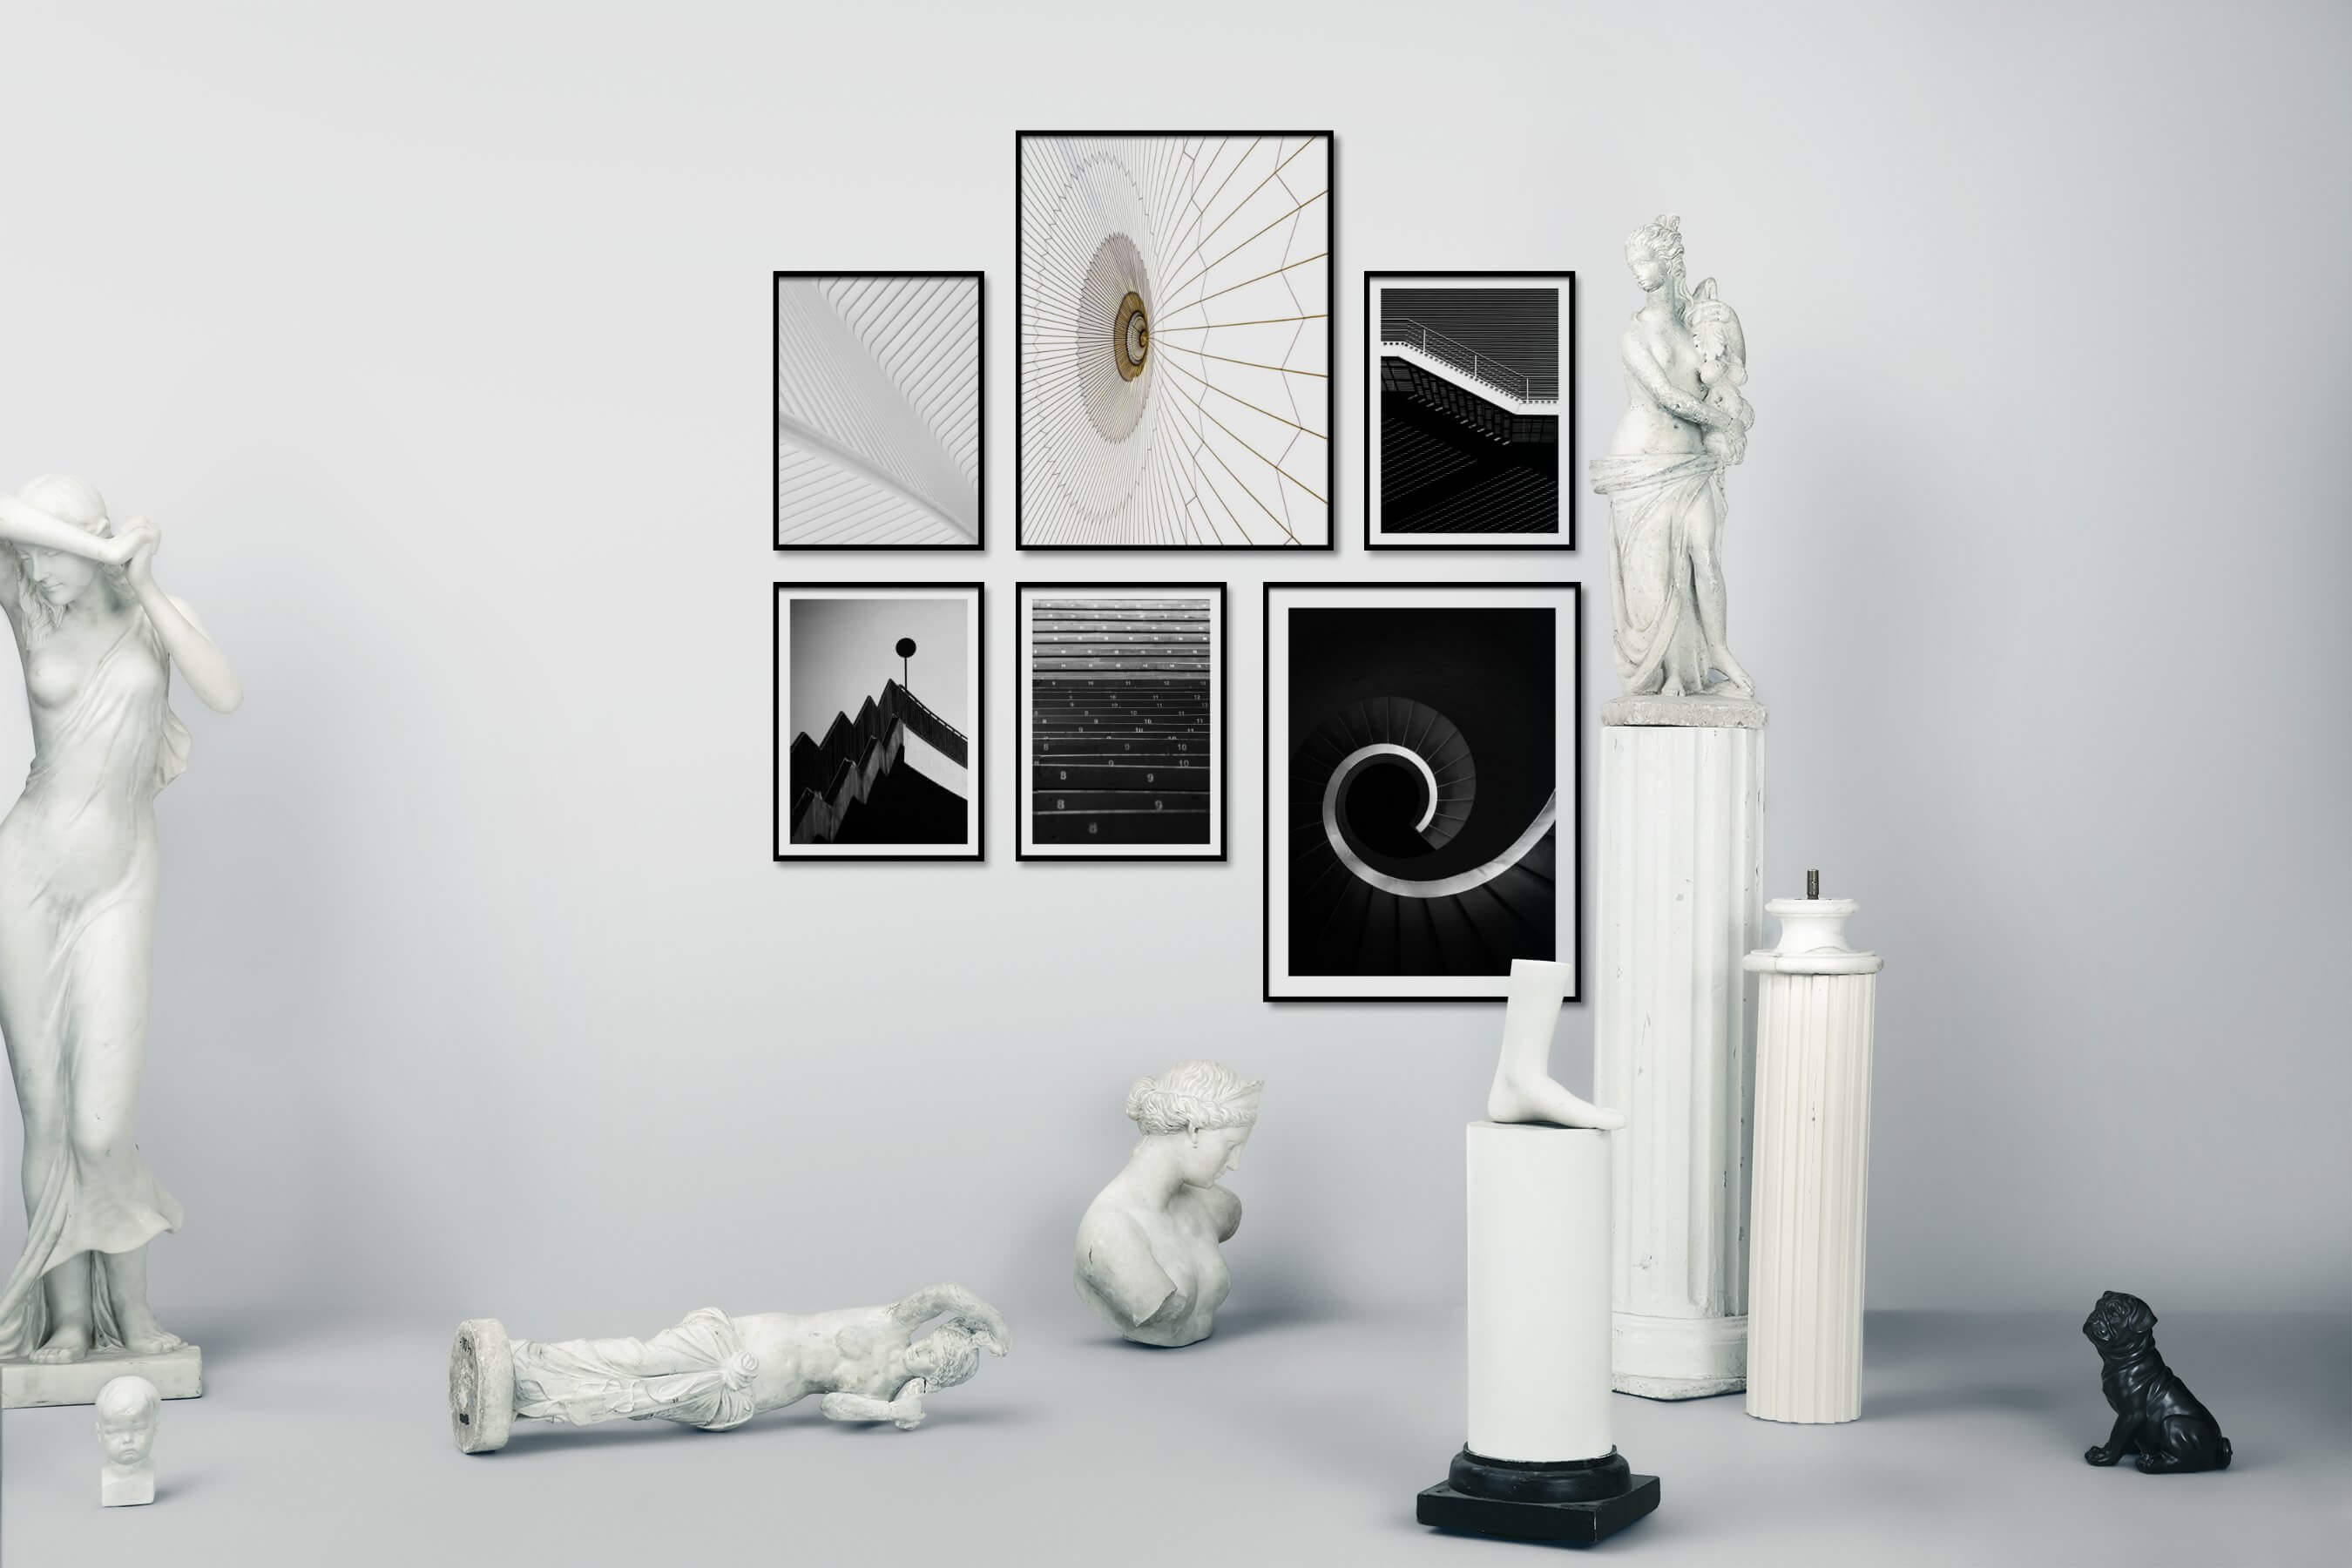 Gallery wall idea with six framed pictures arranged on a wall depicting Black & White, For the Moderate, For the Maximalist, and For the Minimalist